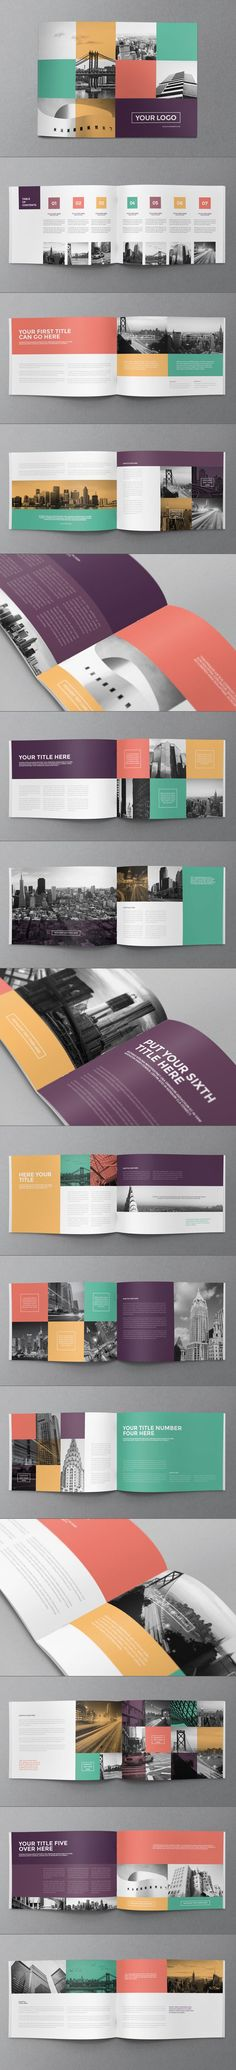 Colorful Brochure Design